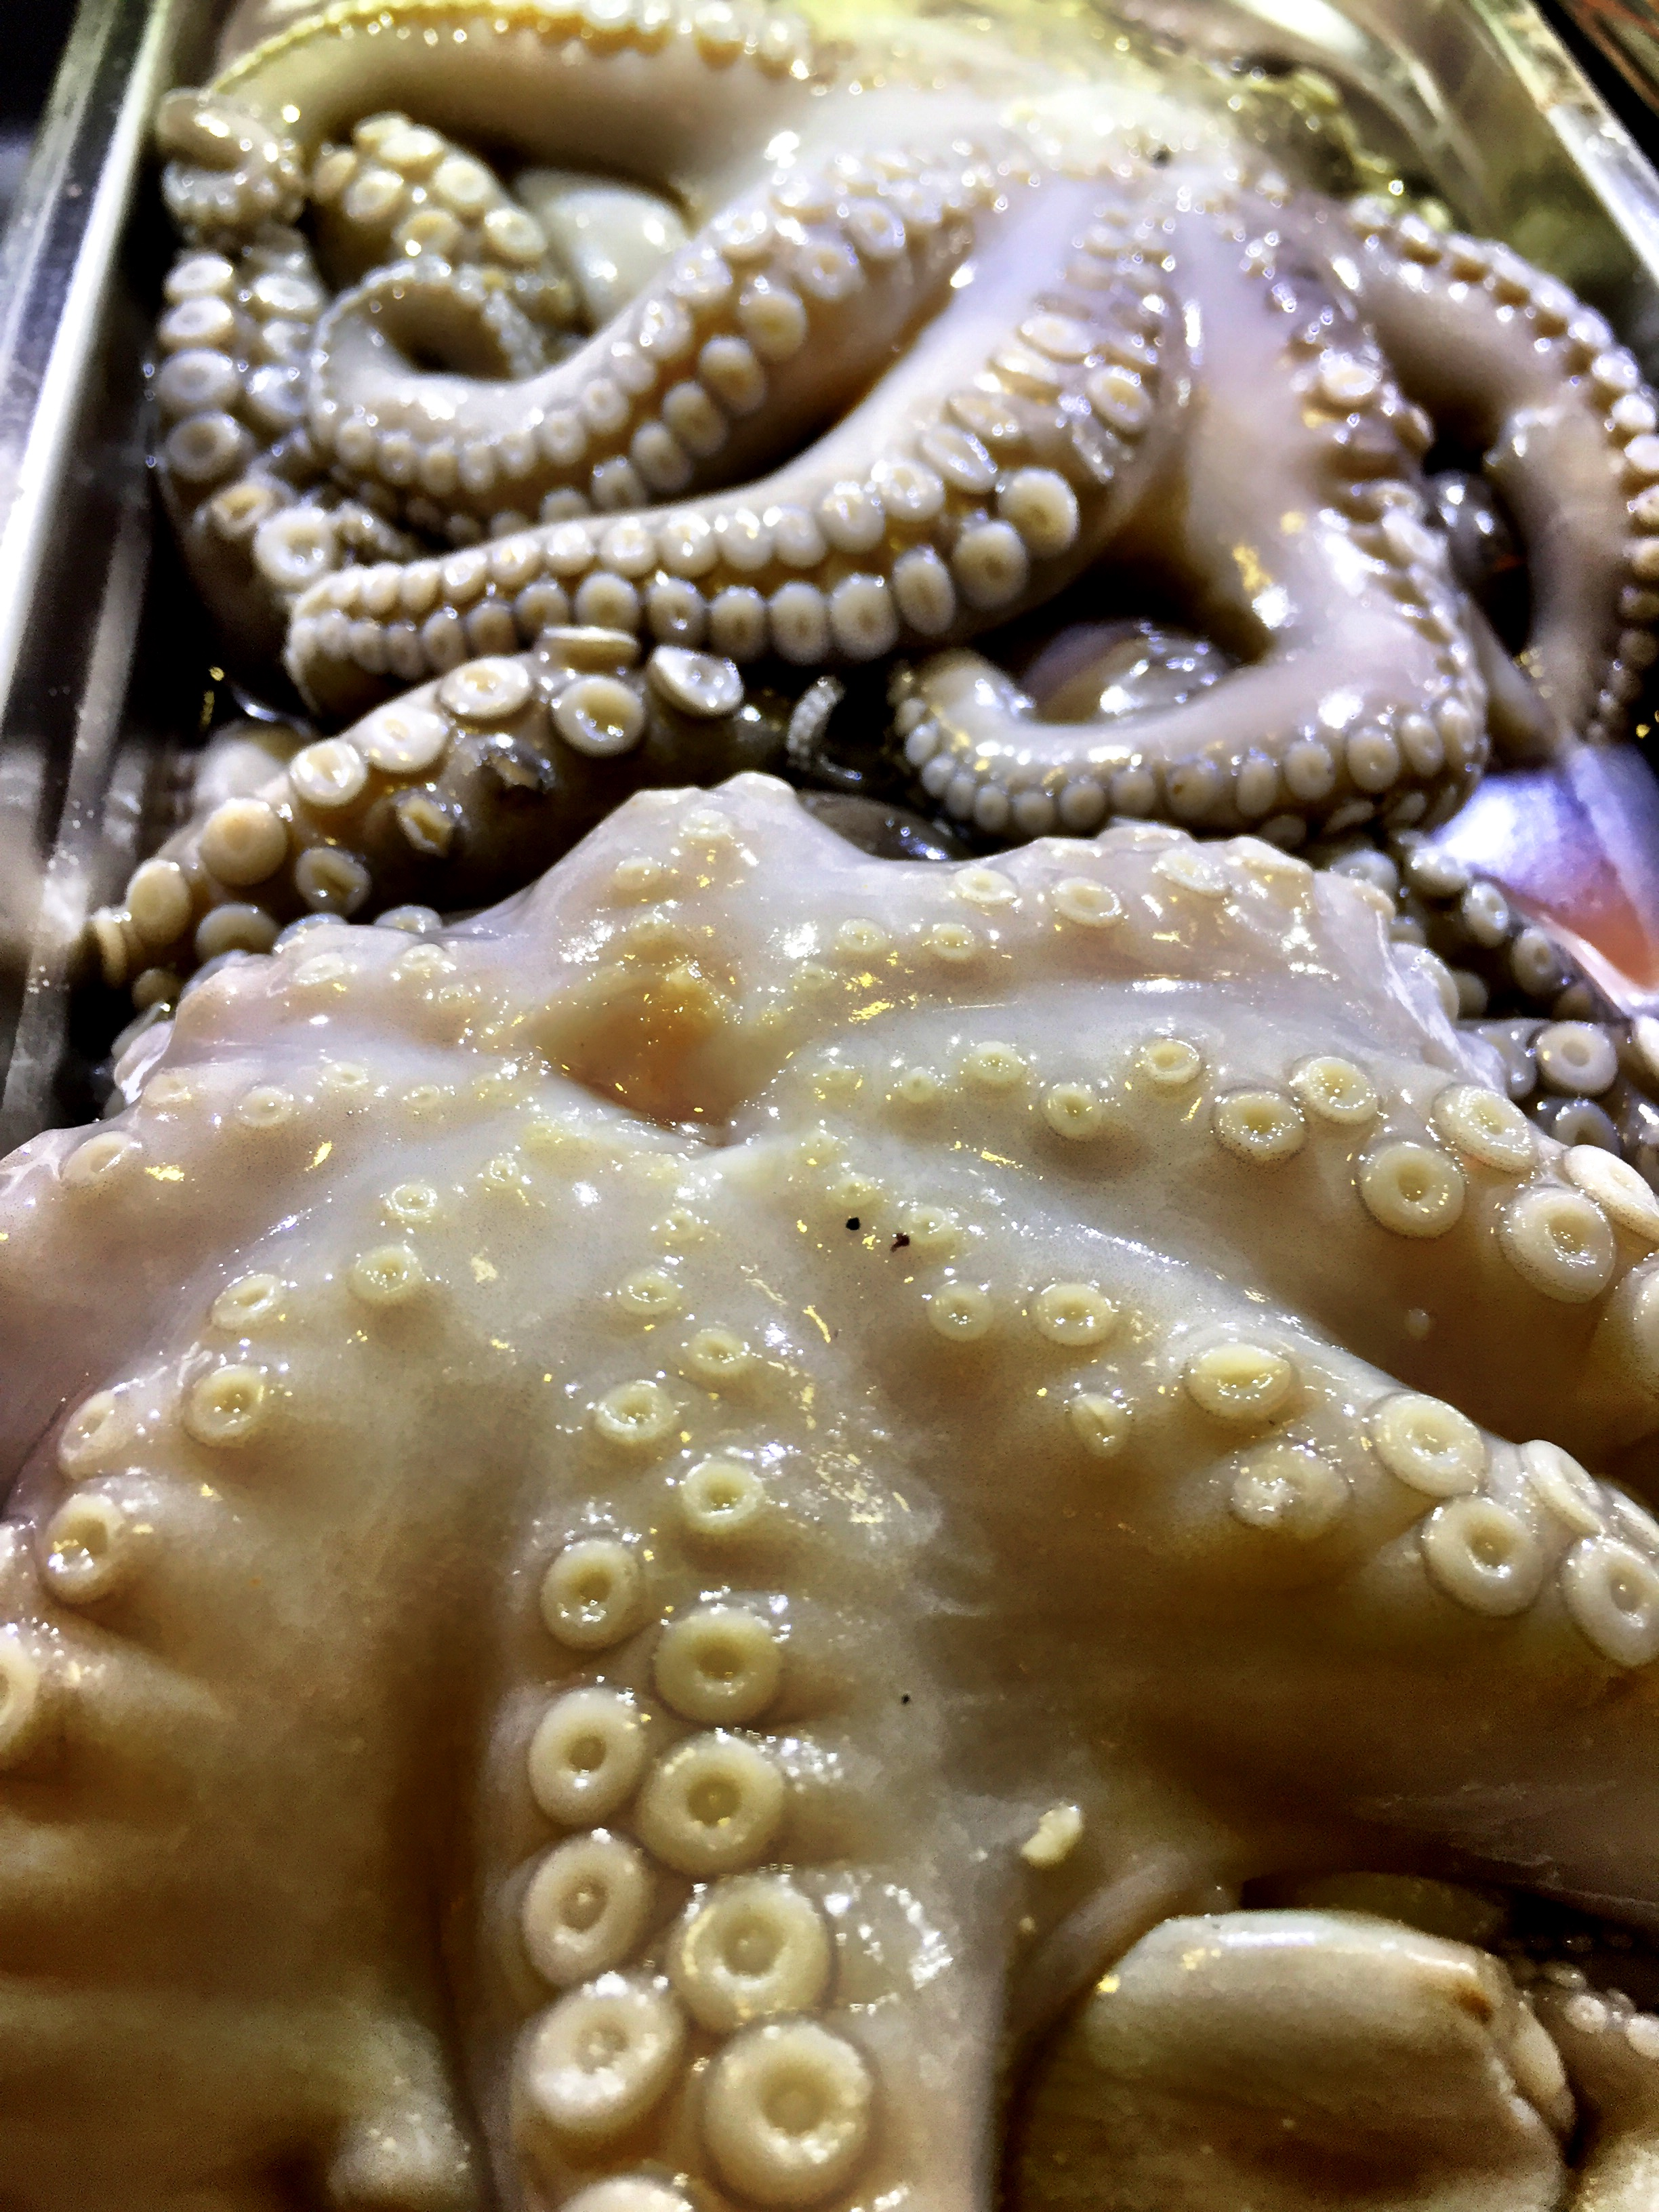 Who's in the mood for octopus?